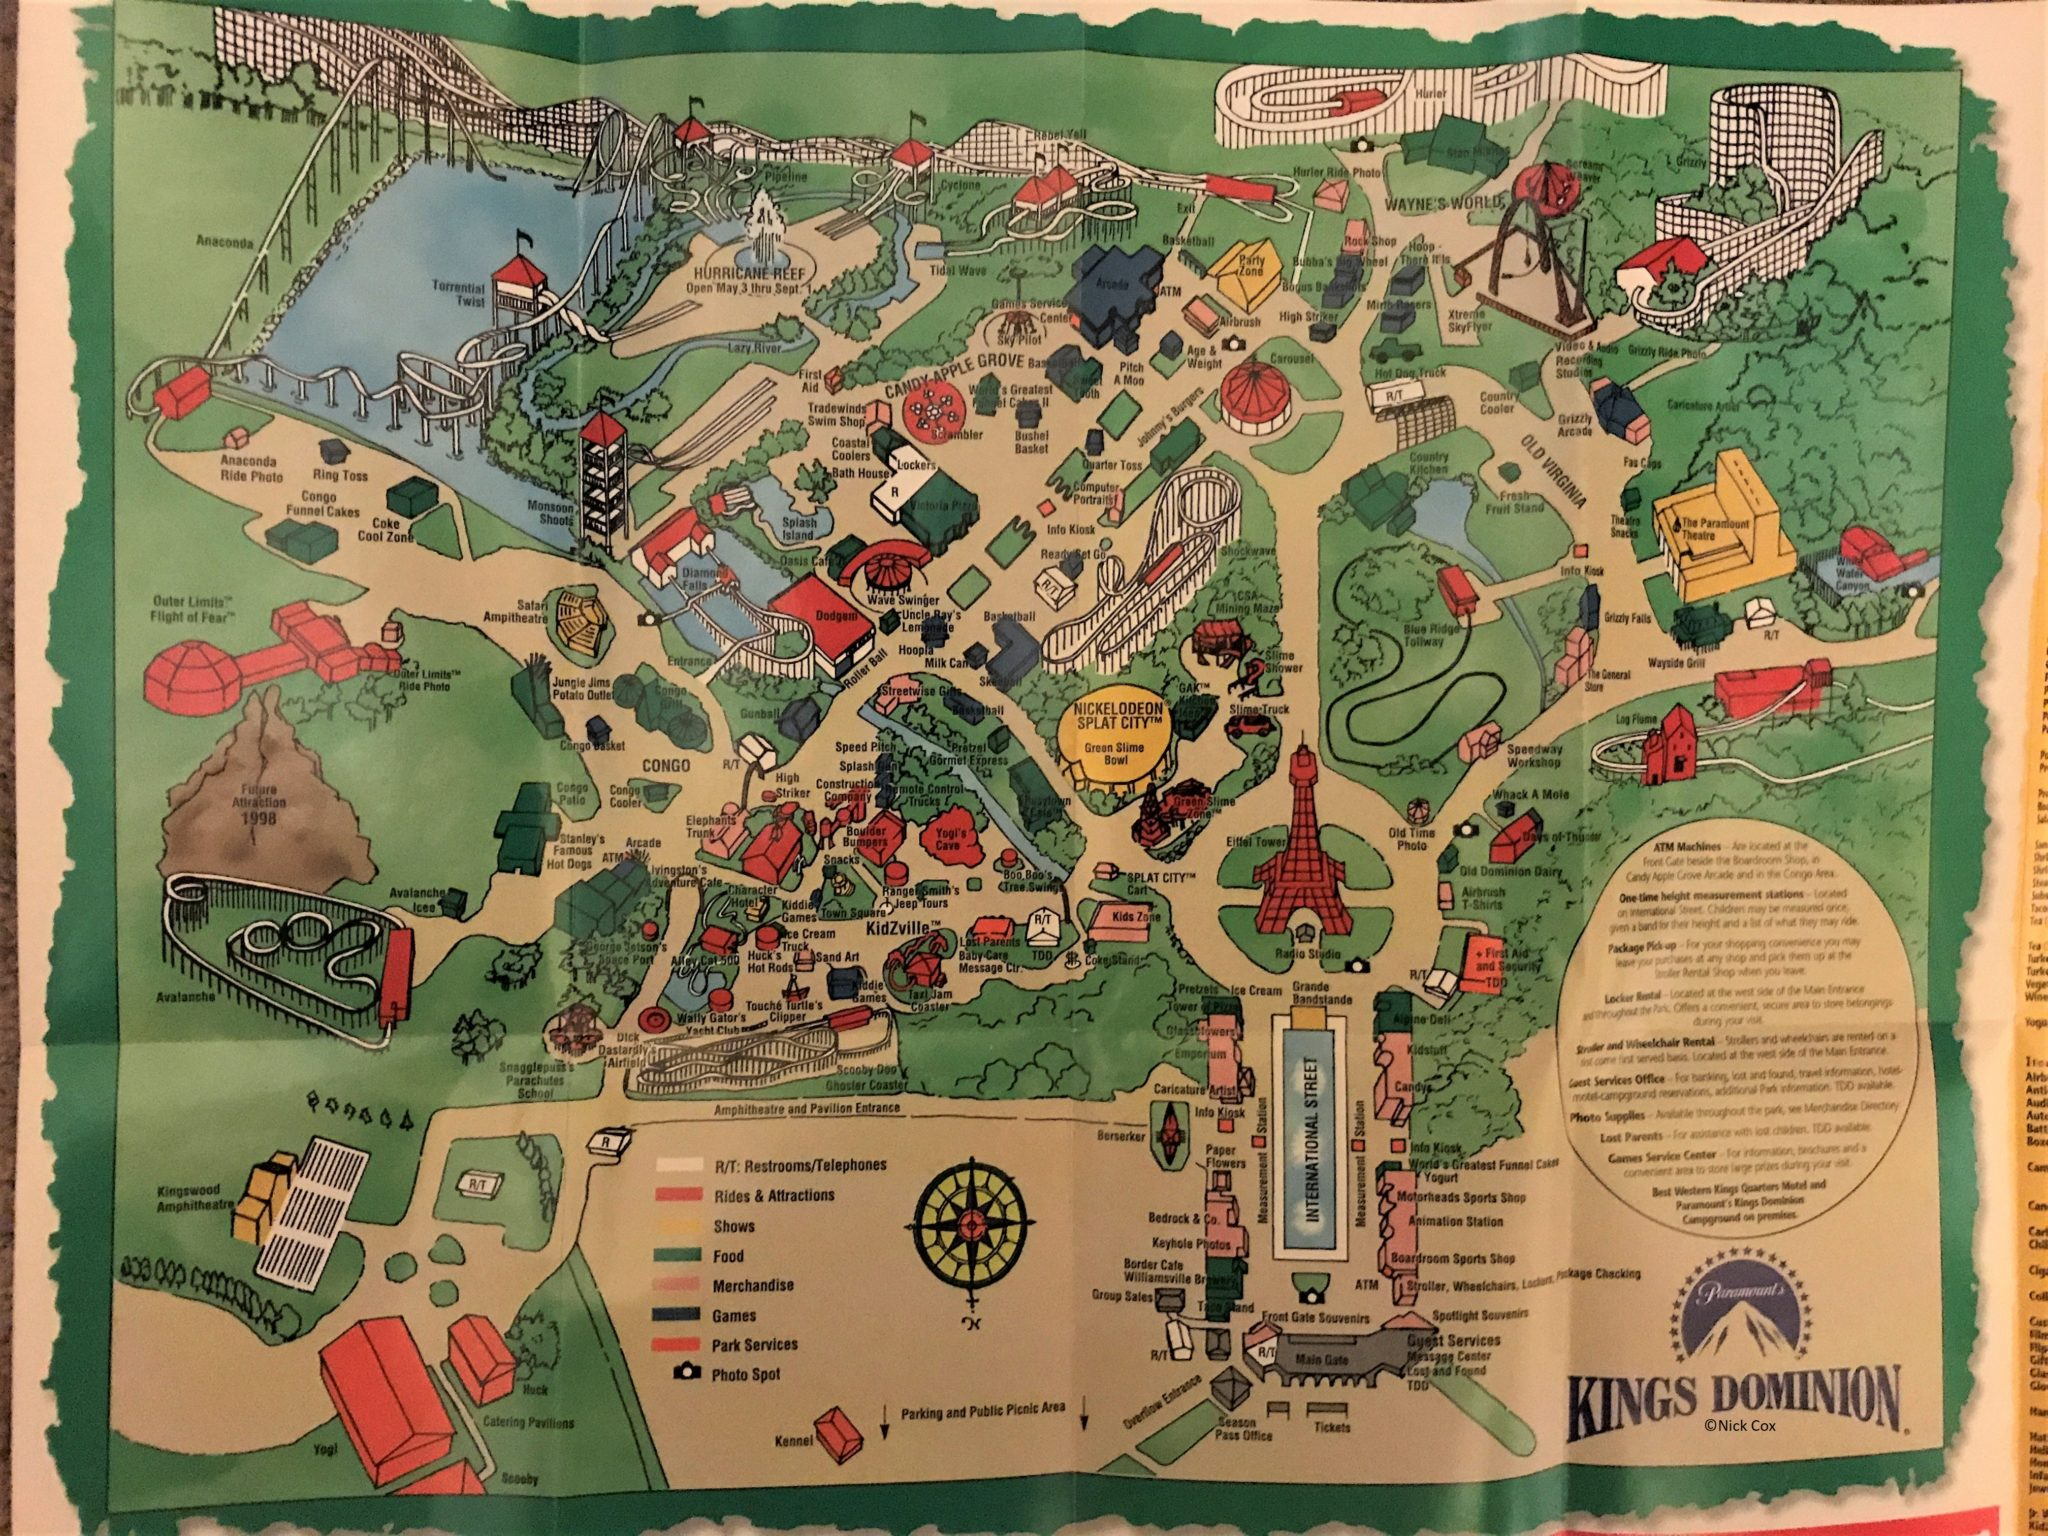 Kings Dominion Map Kings Dominion Historical Maps   CP Food Blog Kings Dominion Map